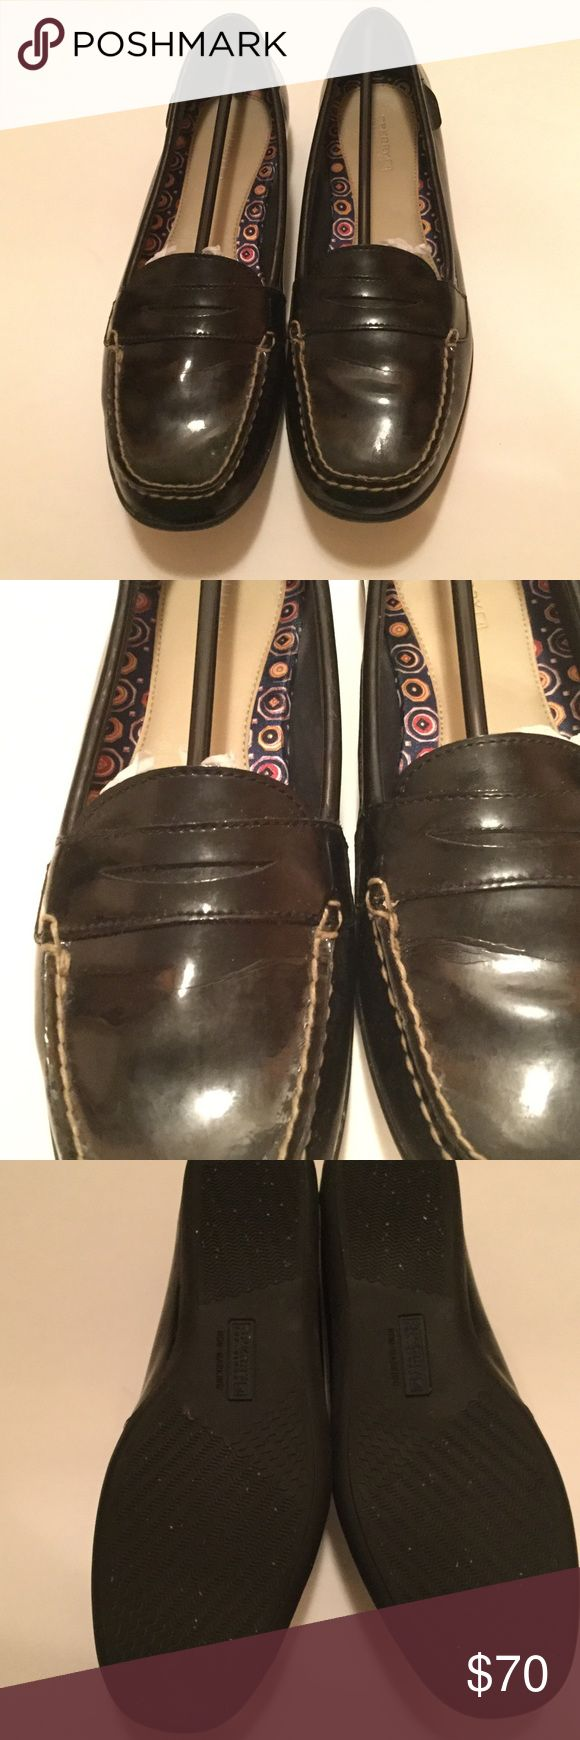 Black Patent Leather Sperry Loafers NWOT Perfect for the office, I'm pretty sure these have never been worn, no wear on bottom and no imperfections. Open to reasonable offers! Sperry Top-Sider Shoes Flats & Loafers